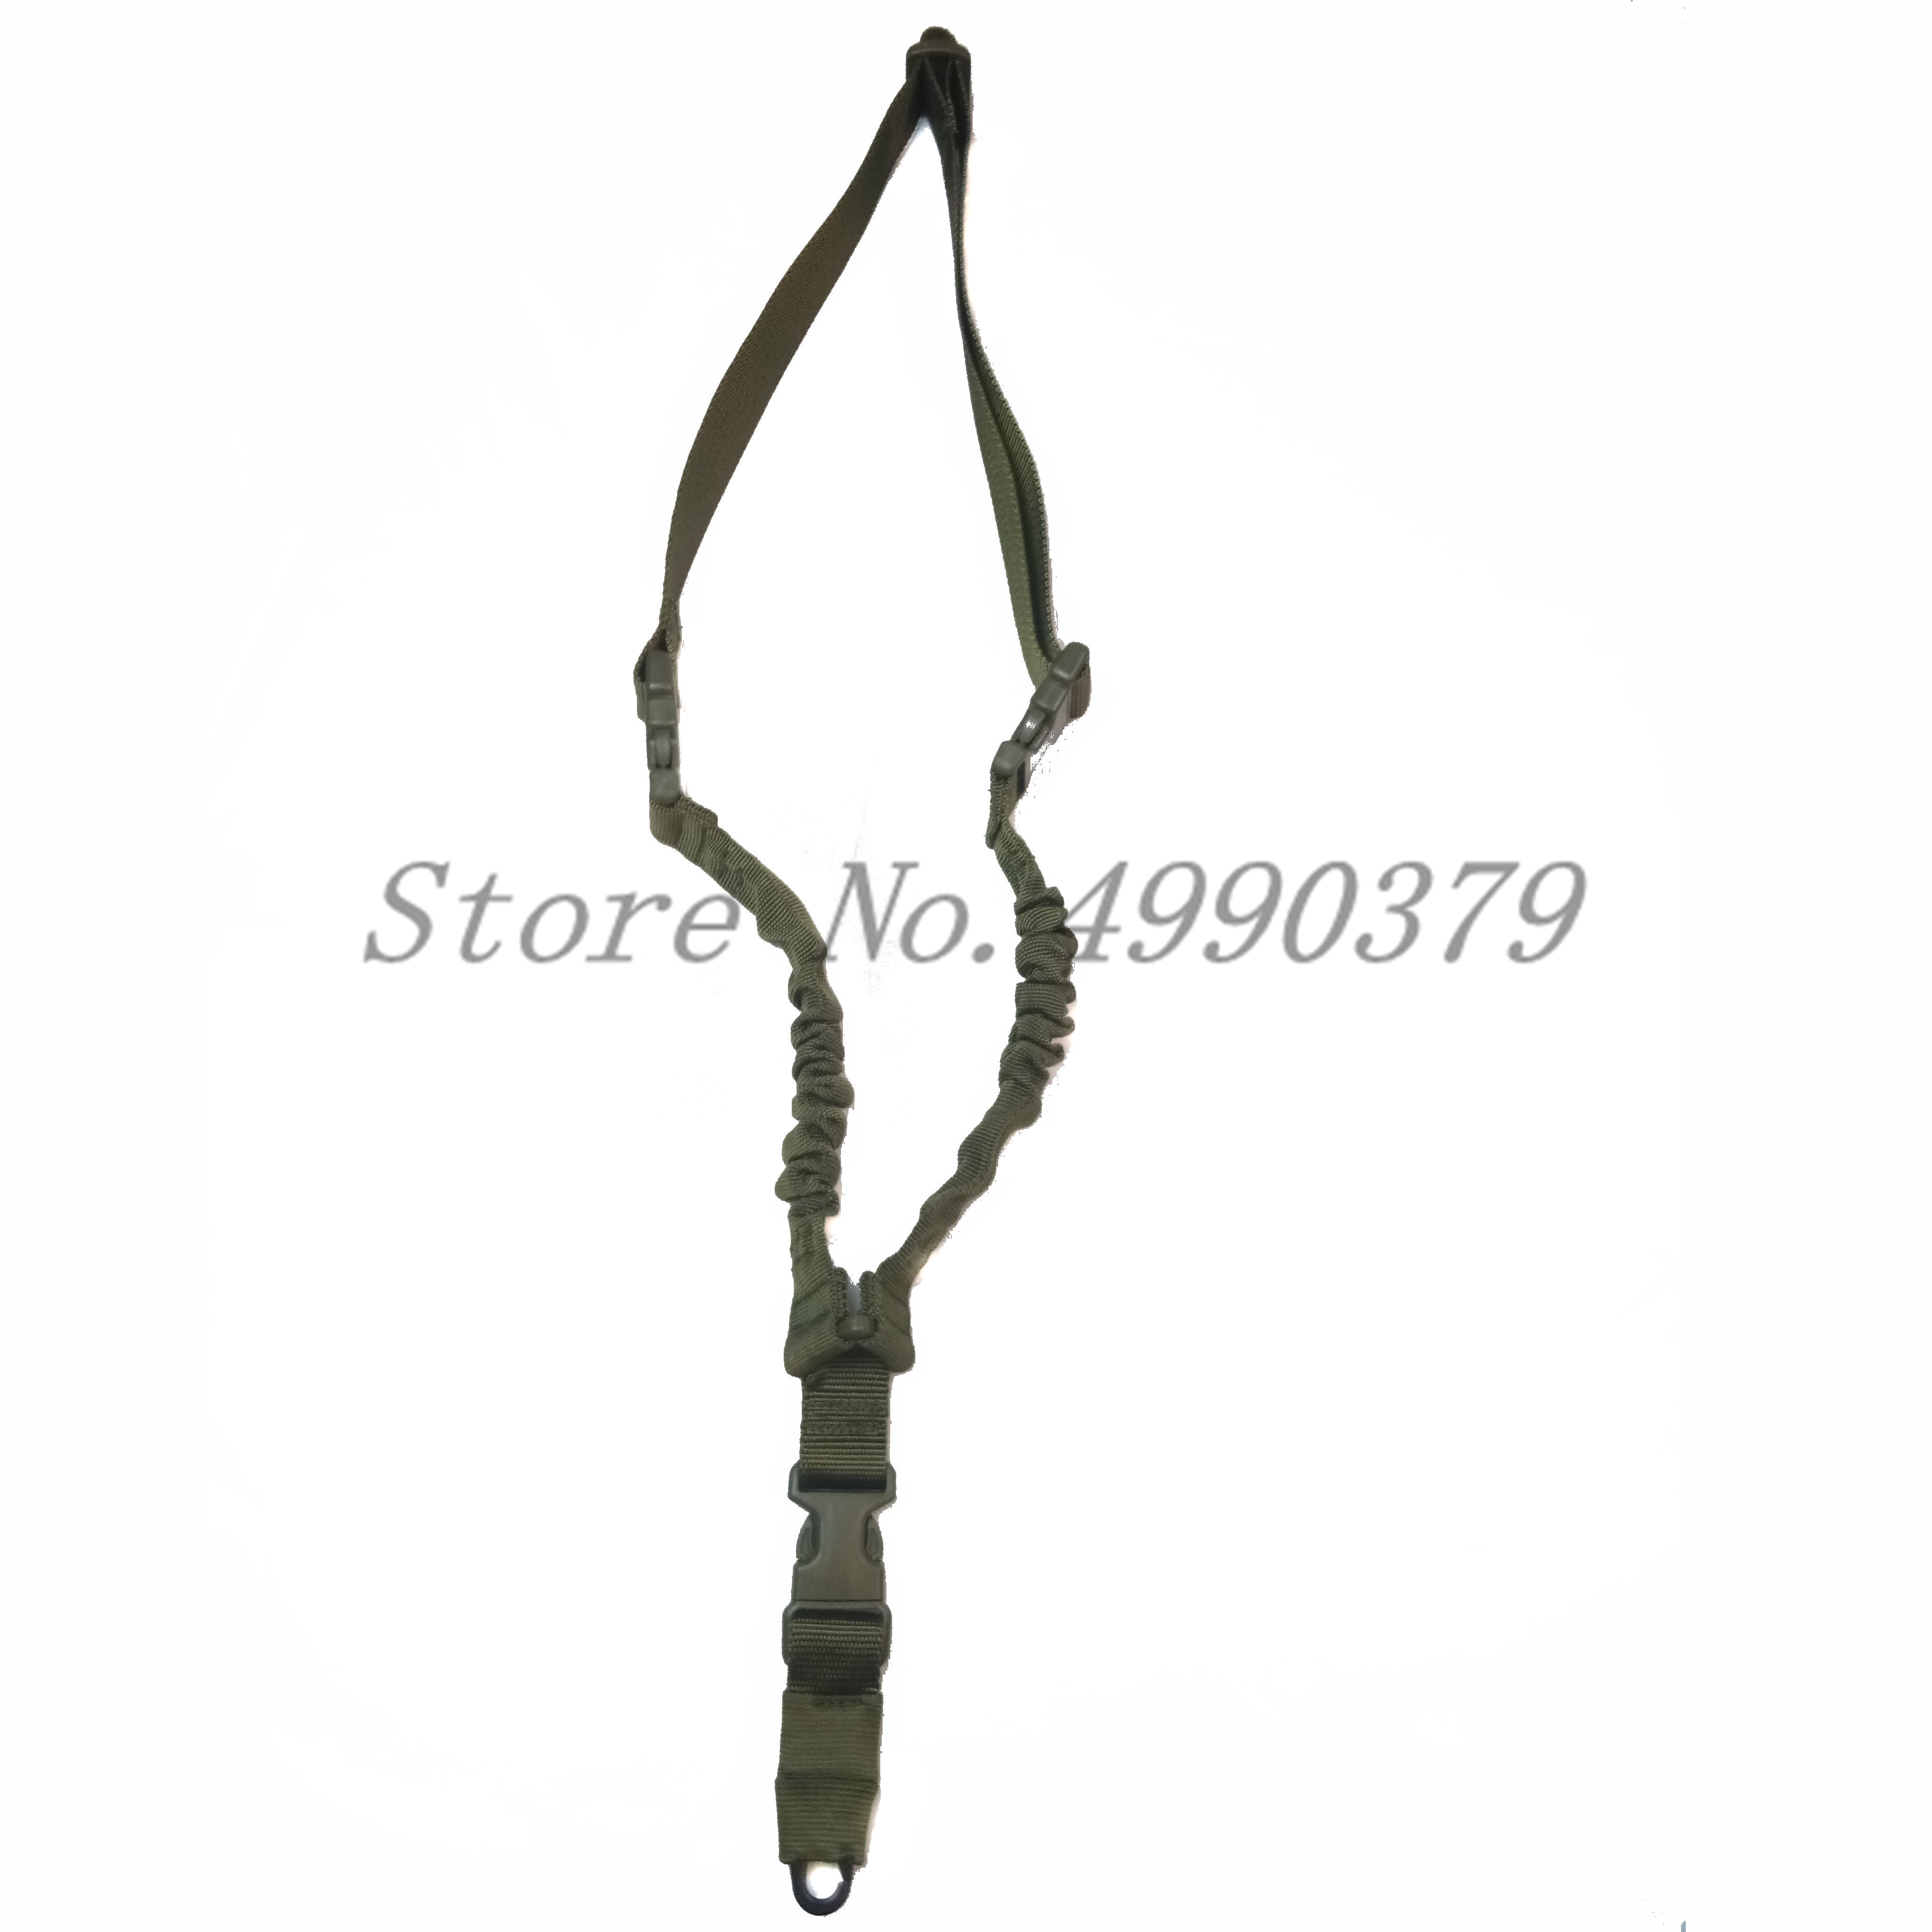 Image 3 - Tactical One PoiRifle Gun Sling Strap System Hunting Adjustable Nylon Single Point Rifle Strap Free Shipping-in Hunting Gun Accessories from Sports & Entertainment